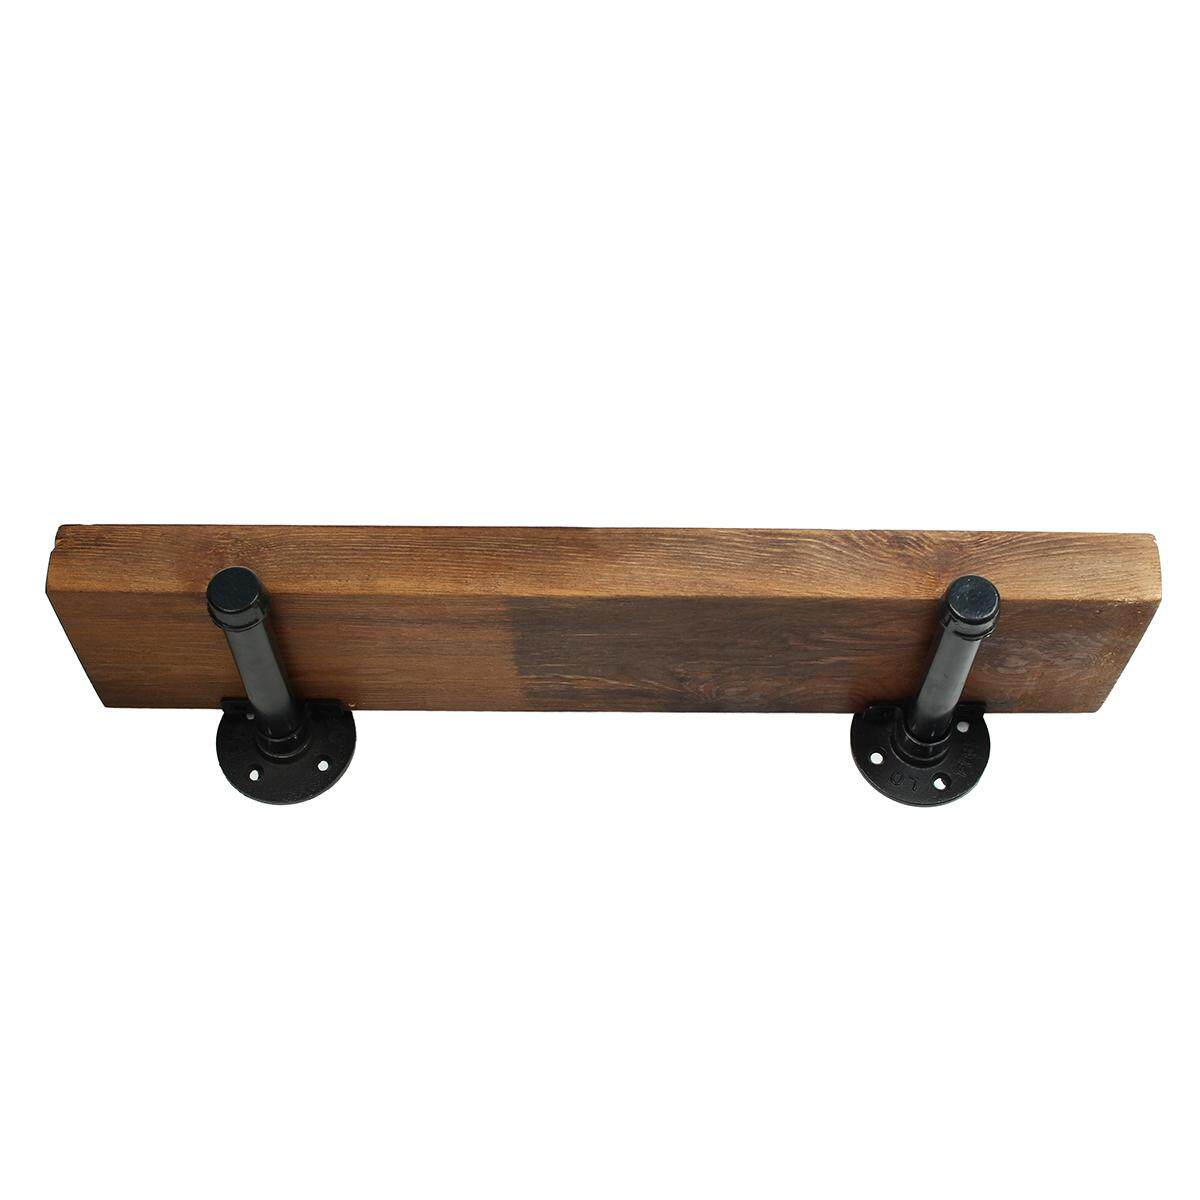 90*15*4.5CM Deep Industrial Floating Shelf, Rustic Shelf, Pipe Shelf, Industrial